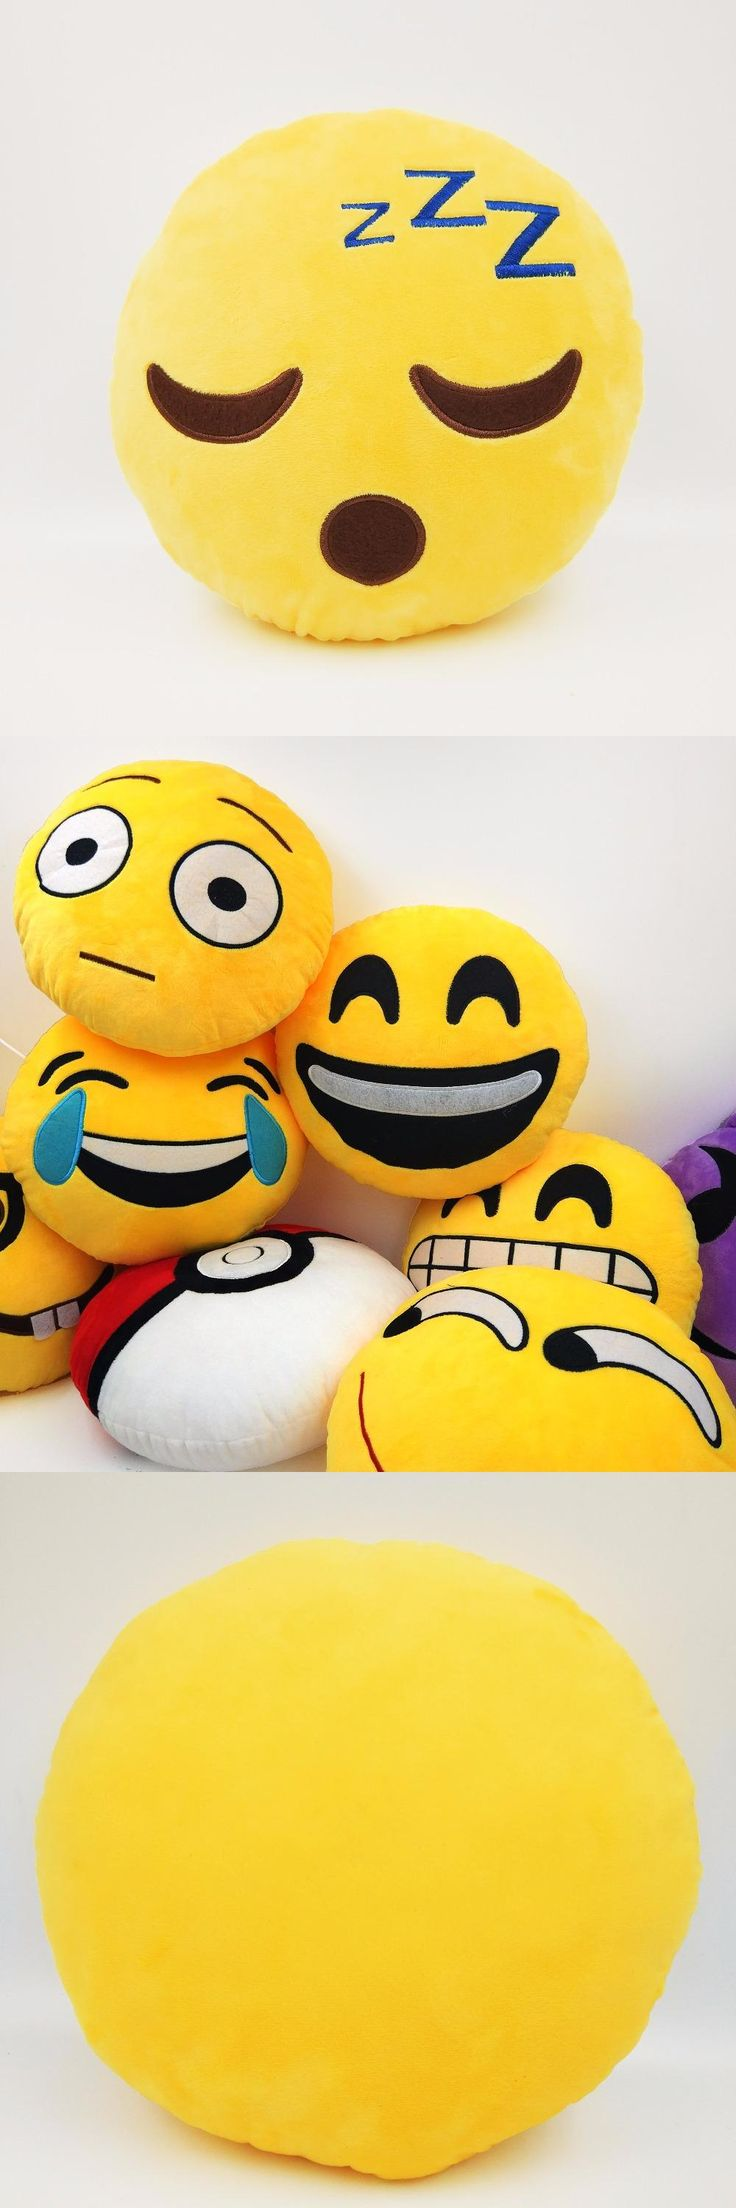 [Visit to Buy] Smiley Emoji Pillow Sleep Look Yellow Round Sofa decorative Pillow Stuffed Plush Cojines Whatsapp Emoji Smiley face Pillow #Advertisement